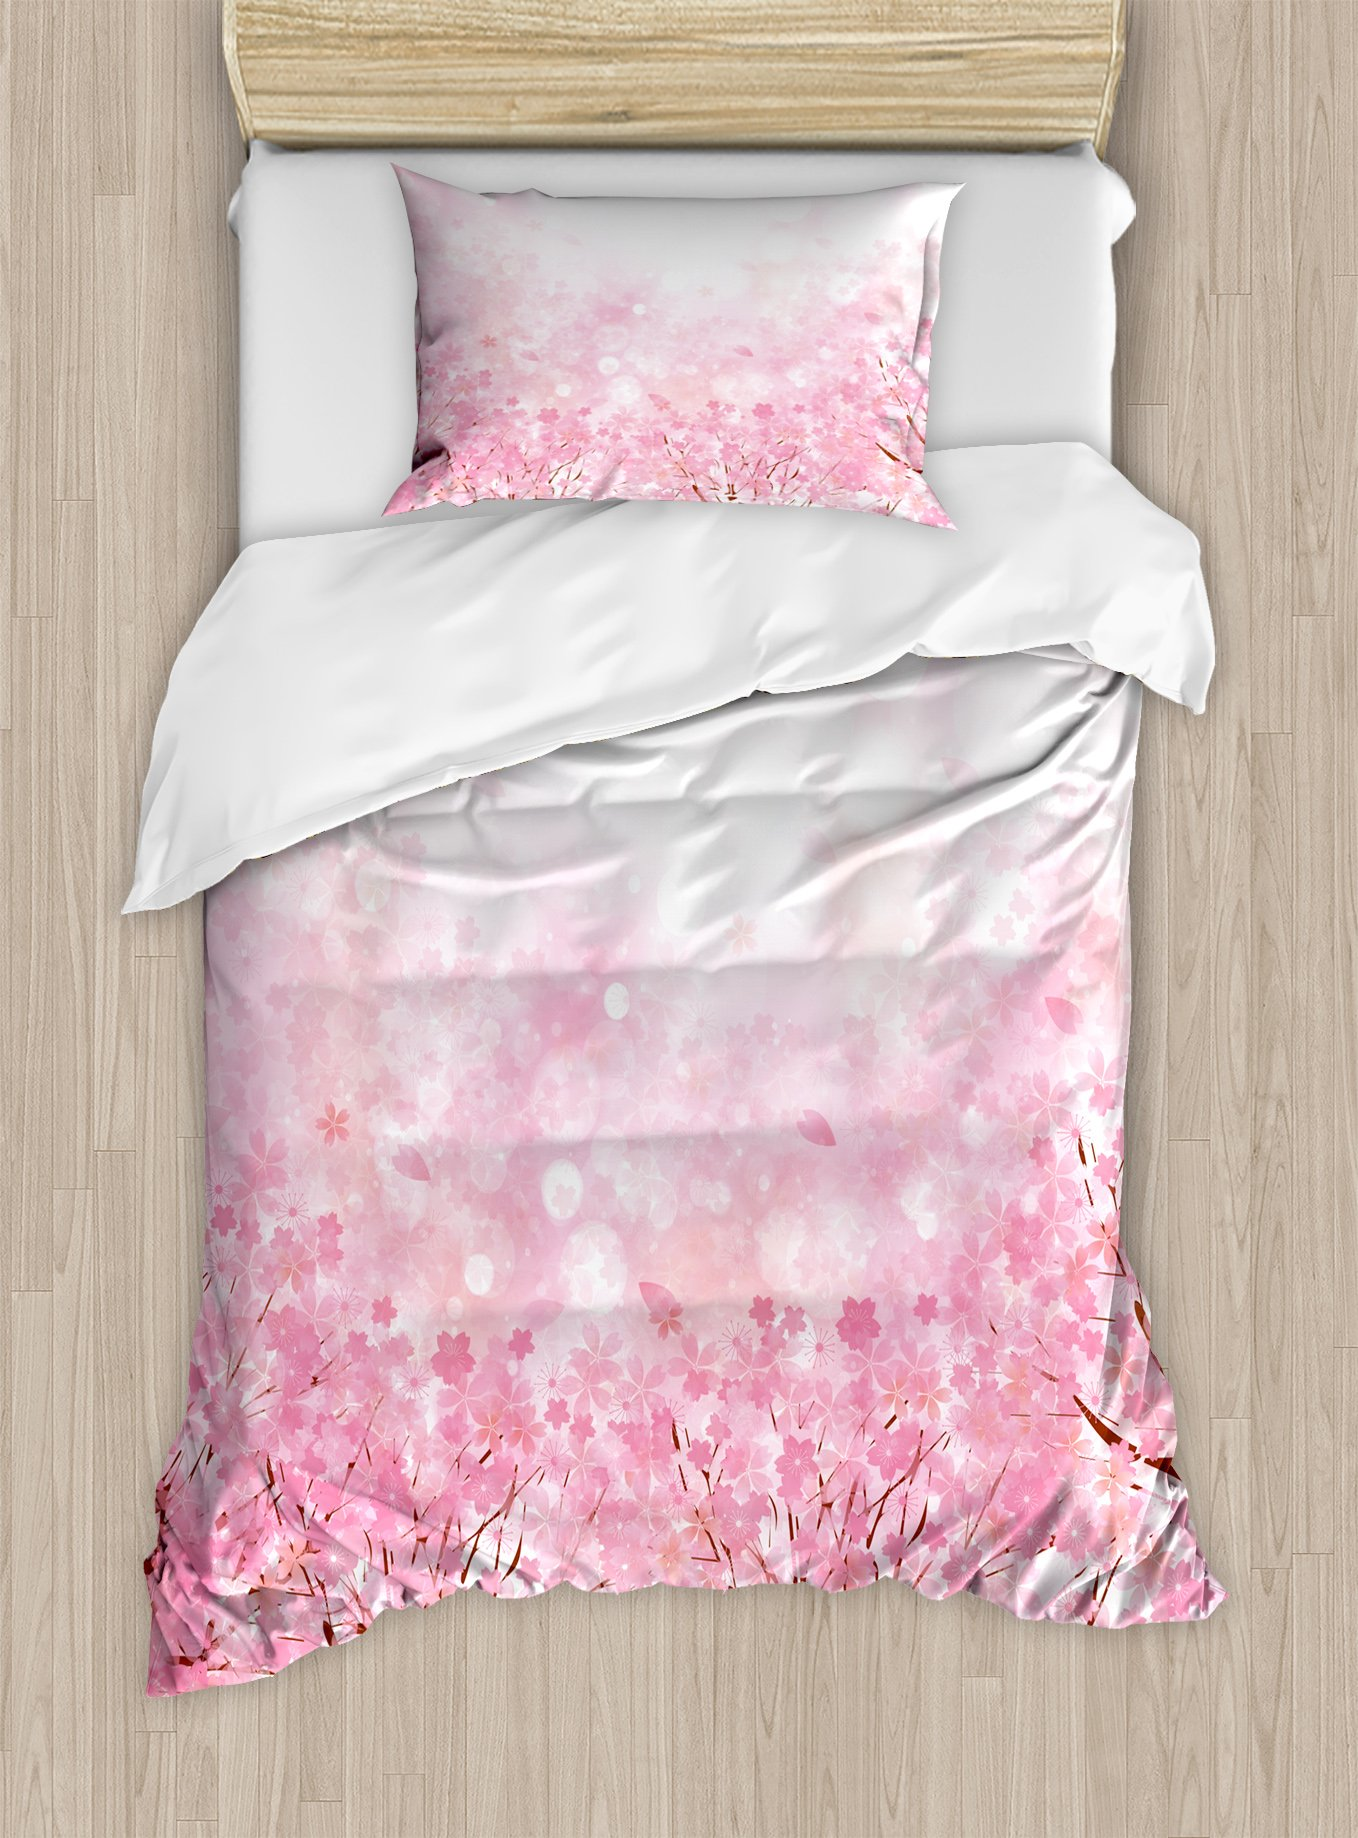 Ambesonne Pale Pink Duvet Cover Set Twin Size, Japanese Cherry Blossom Sakura Tree with Romantic Influence Asian Nature Theme, Decorative 2 Piece Bedding Set with 1 Pillow Sham, Baby Pink